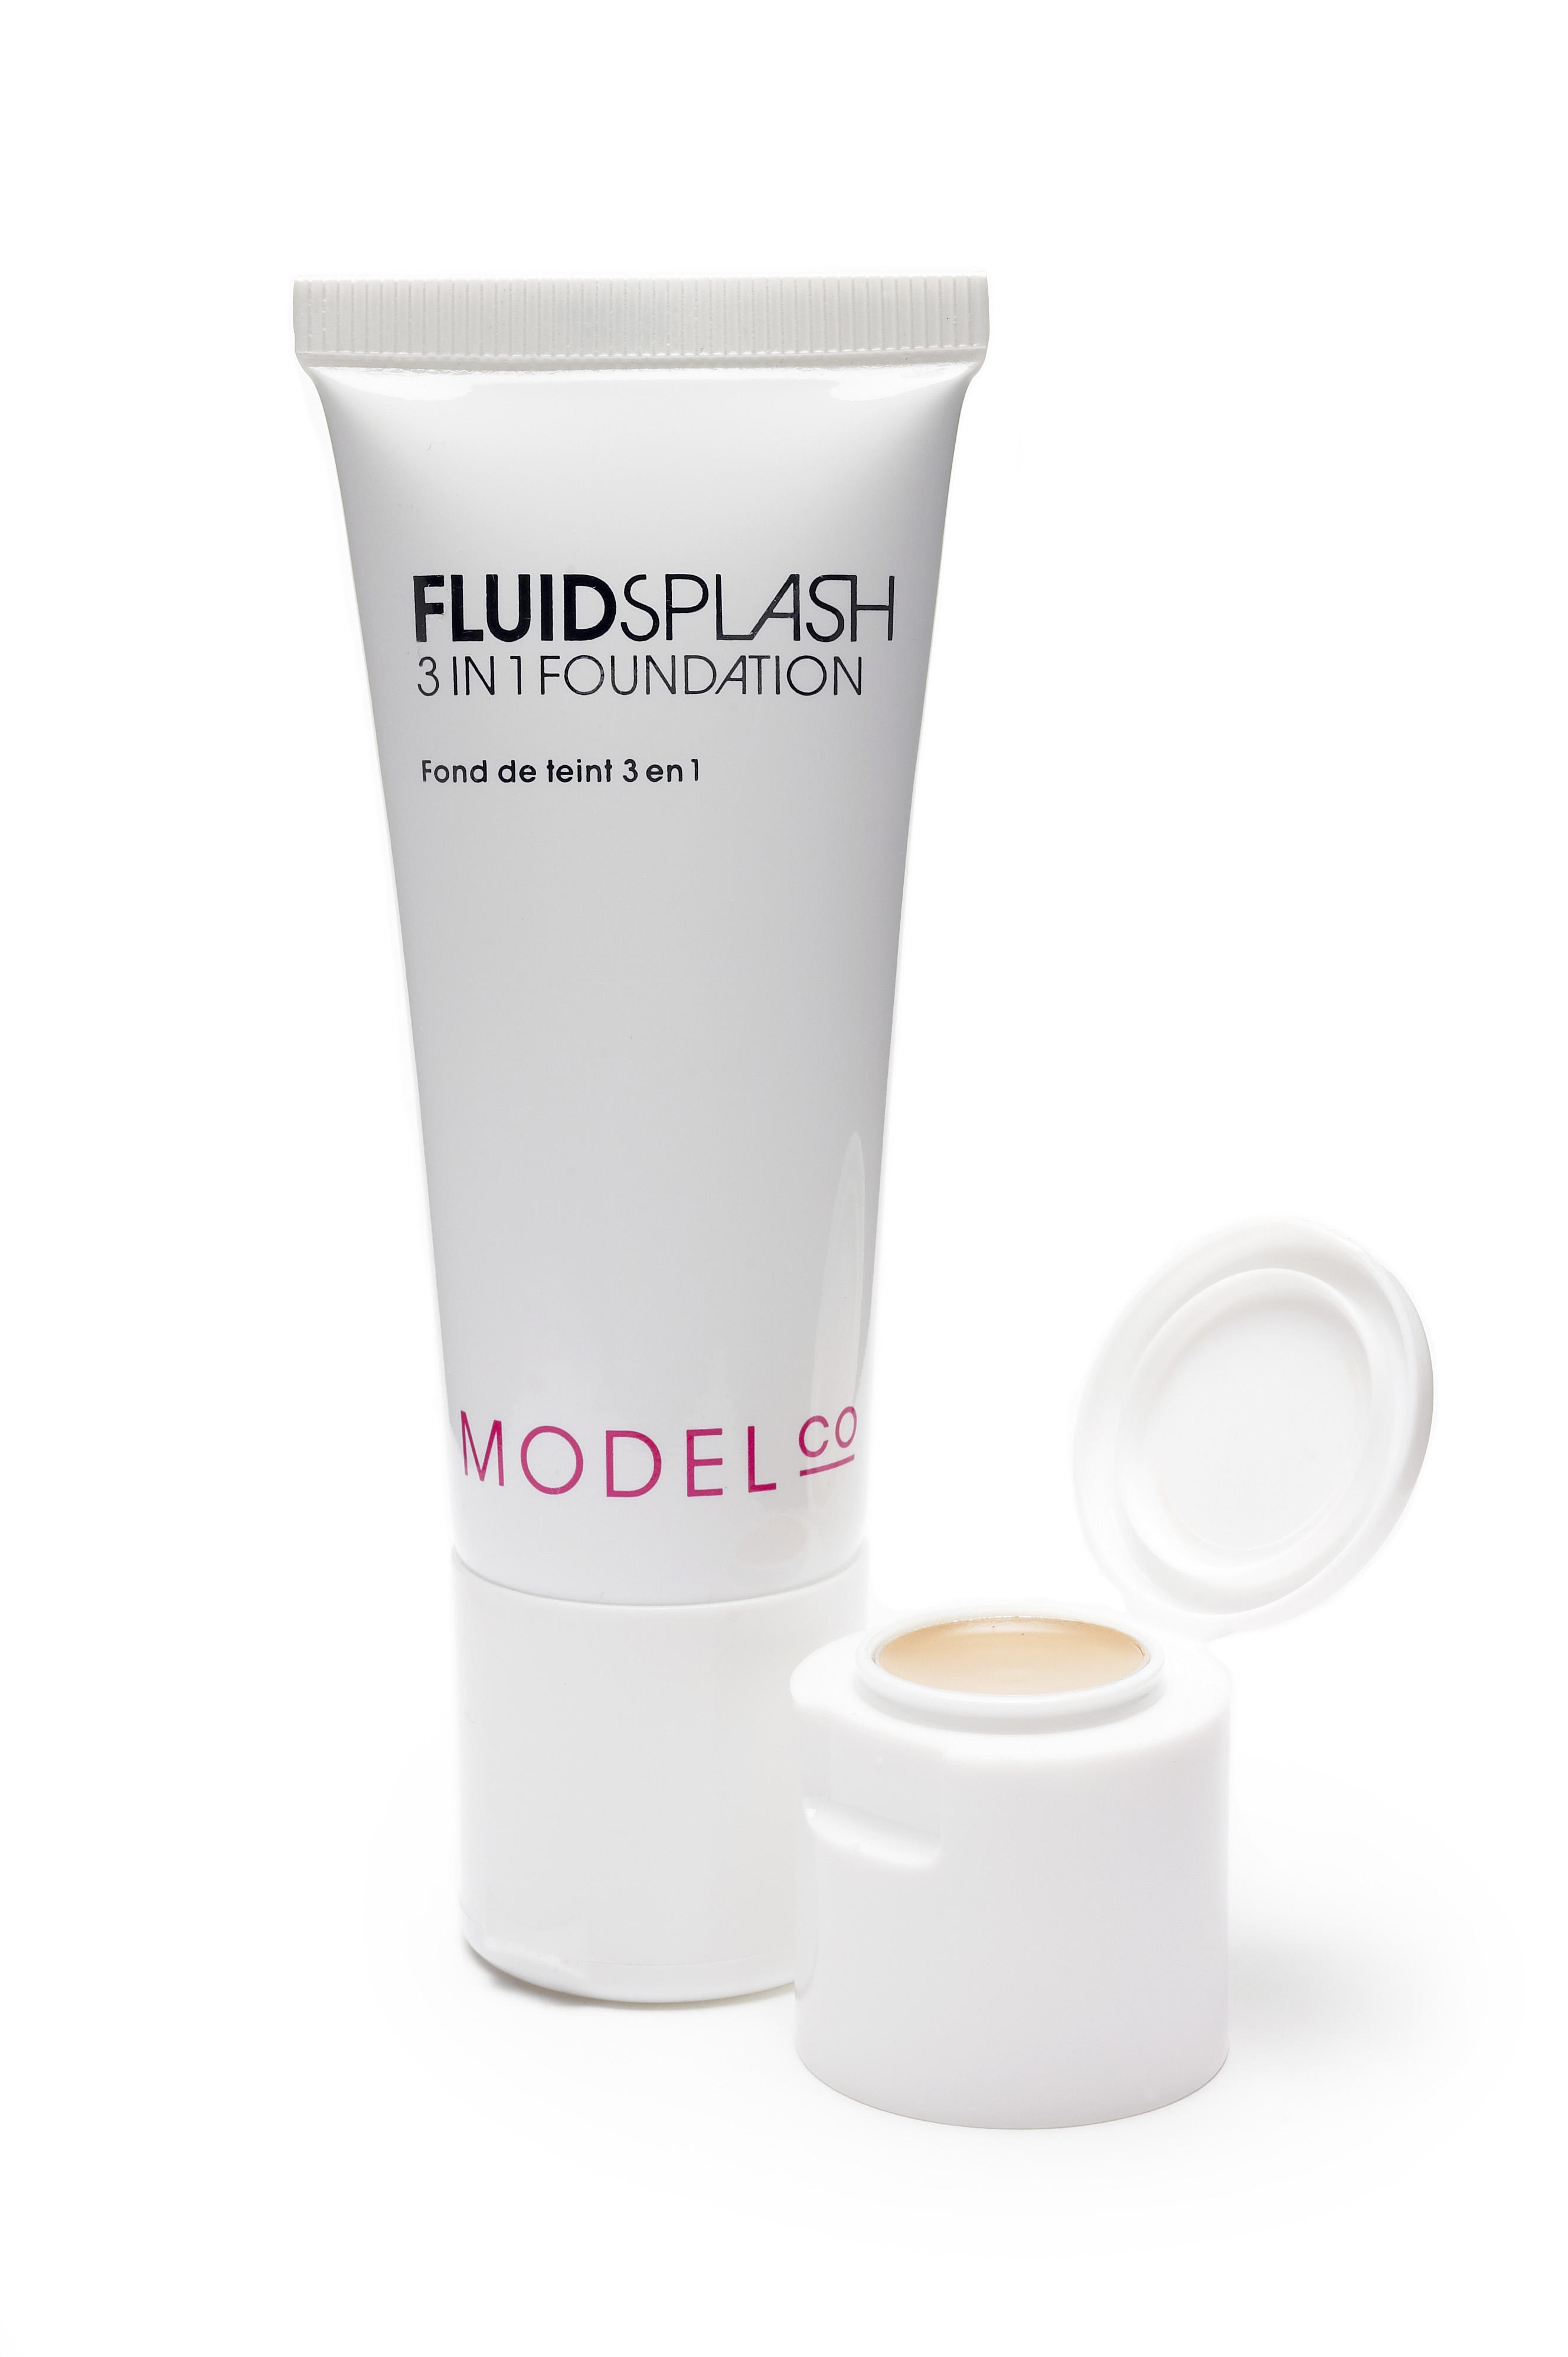 Fluidsplash 3 in 1 Foundation